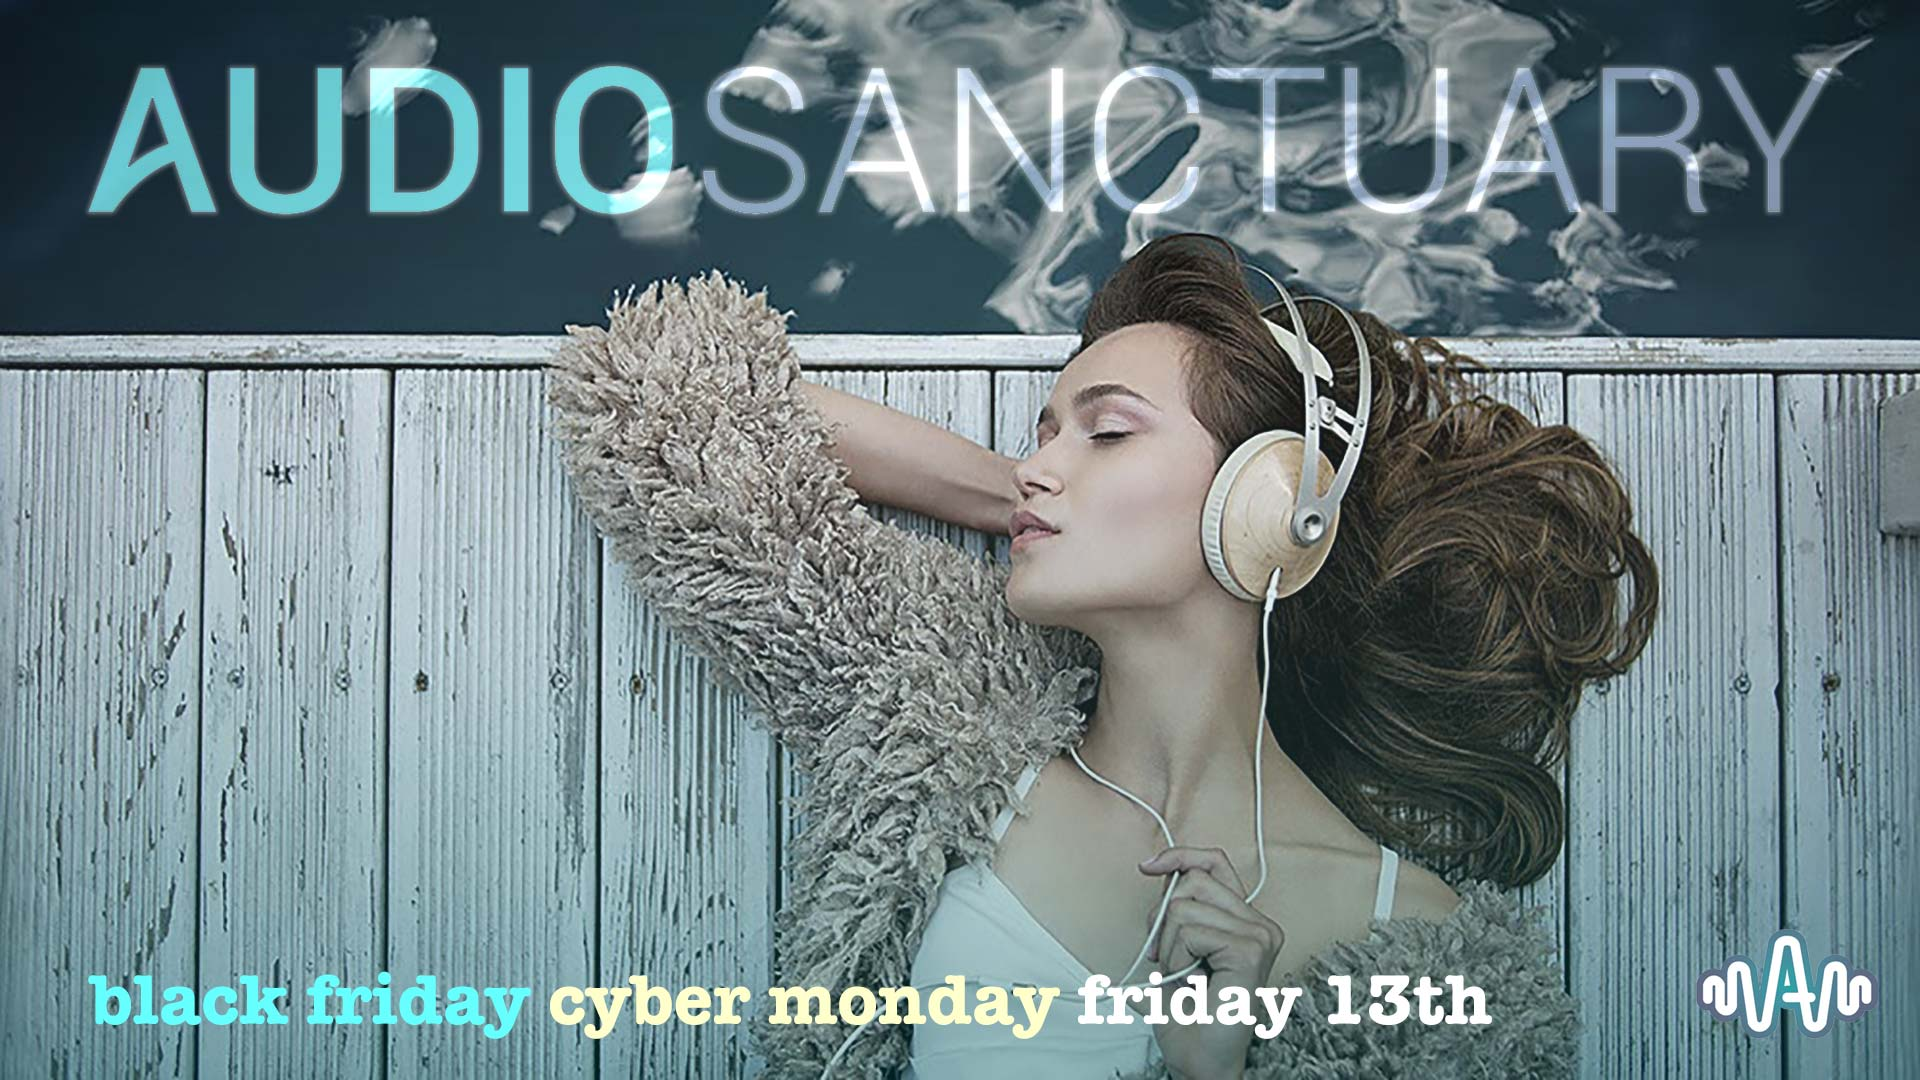 Black Friday 2019 Deals at Audio Sanctuary | Unilet Sound & Vision